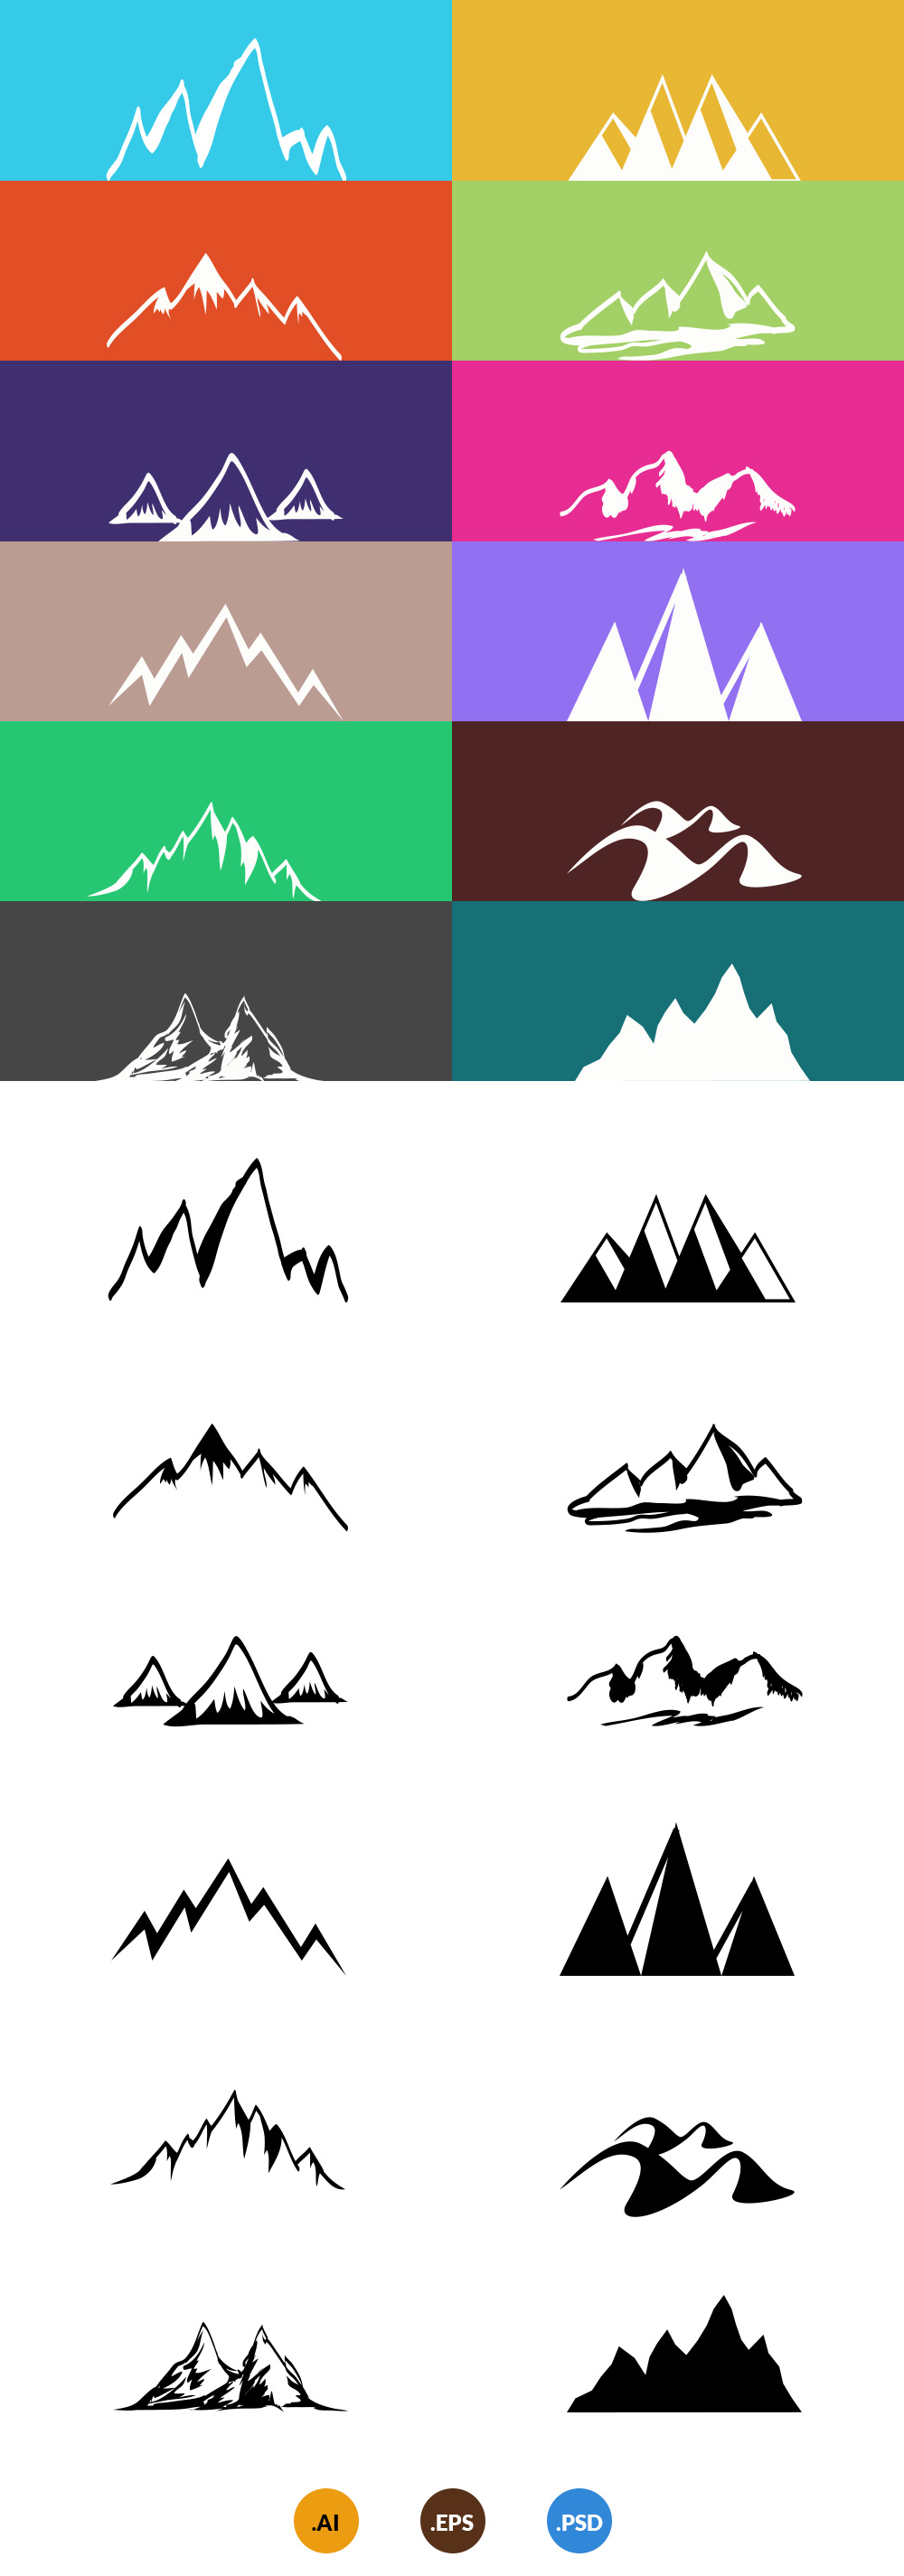 http://www.graphicsfuel.com/wp-content/uploads/2015/02/free-12-vector-mountains.jpg